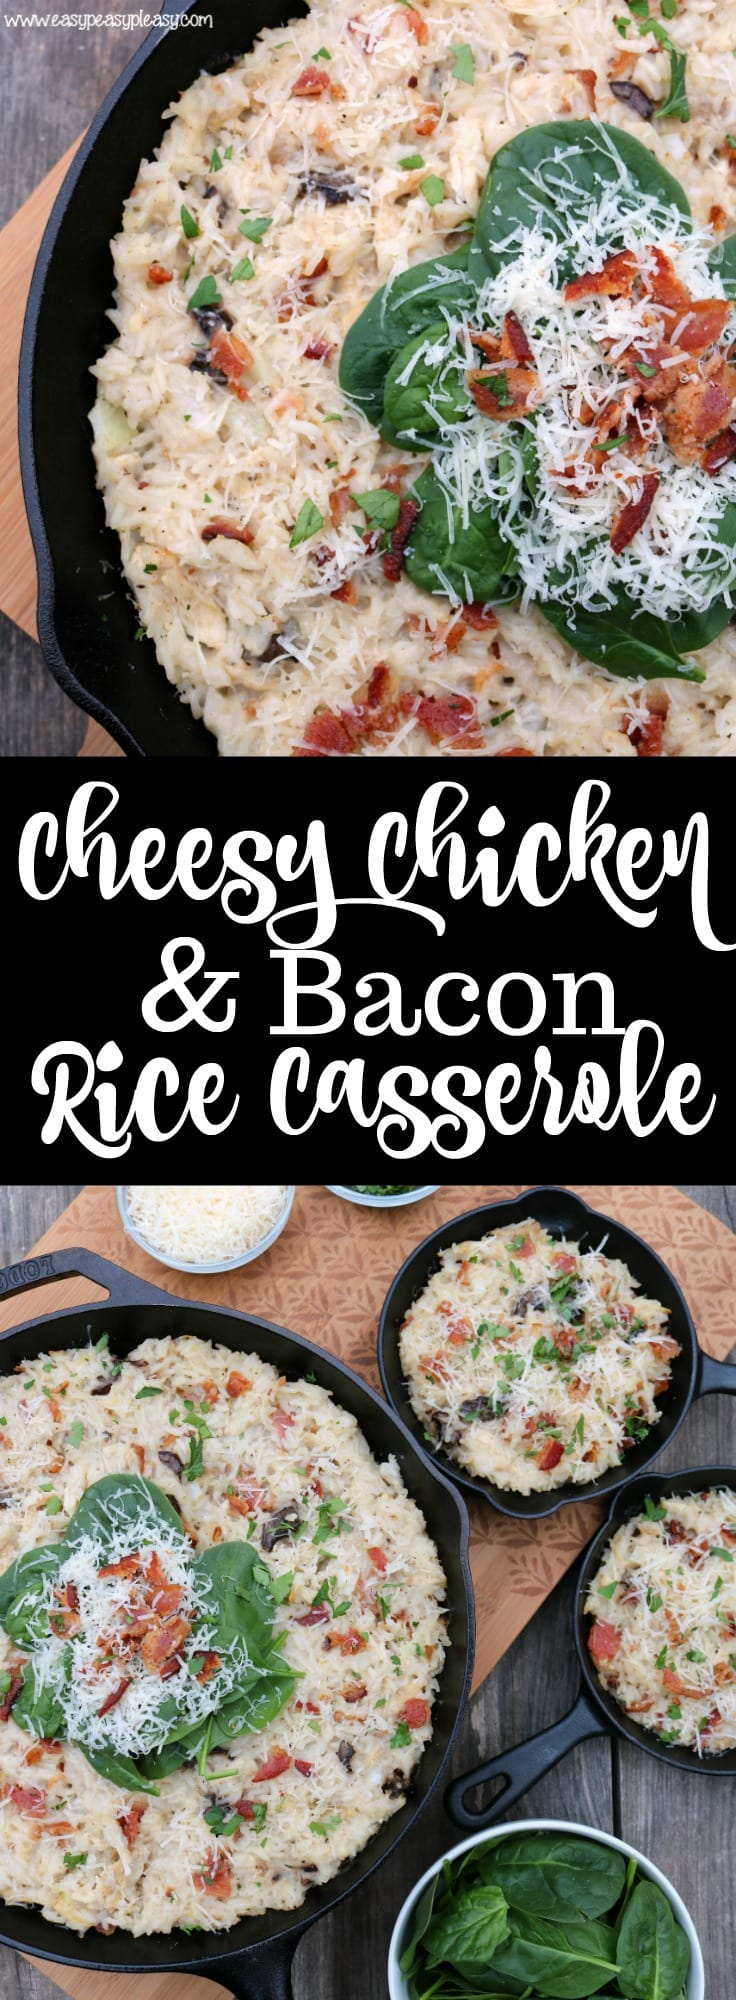 Cheesy Chicken and Bacon Rice Casserole is comfort food perfect!